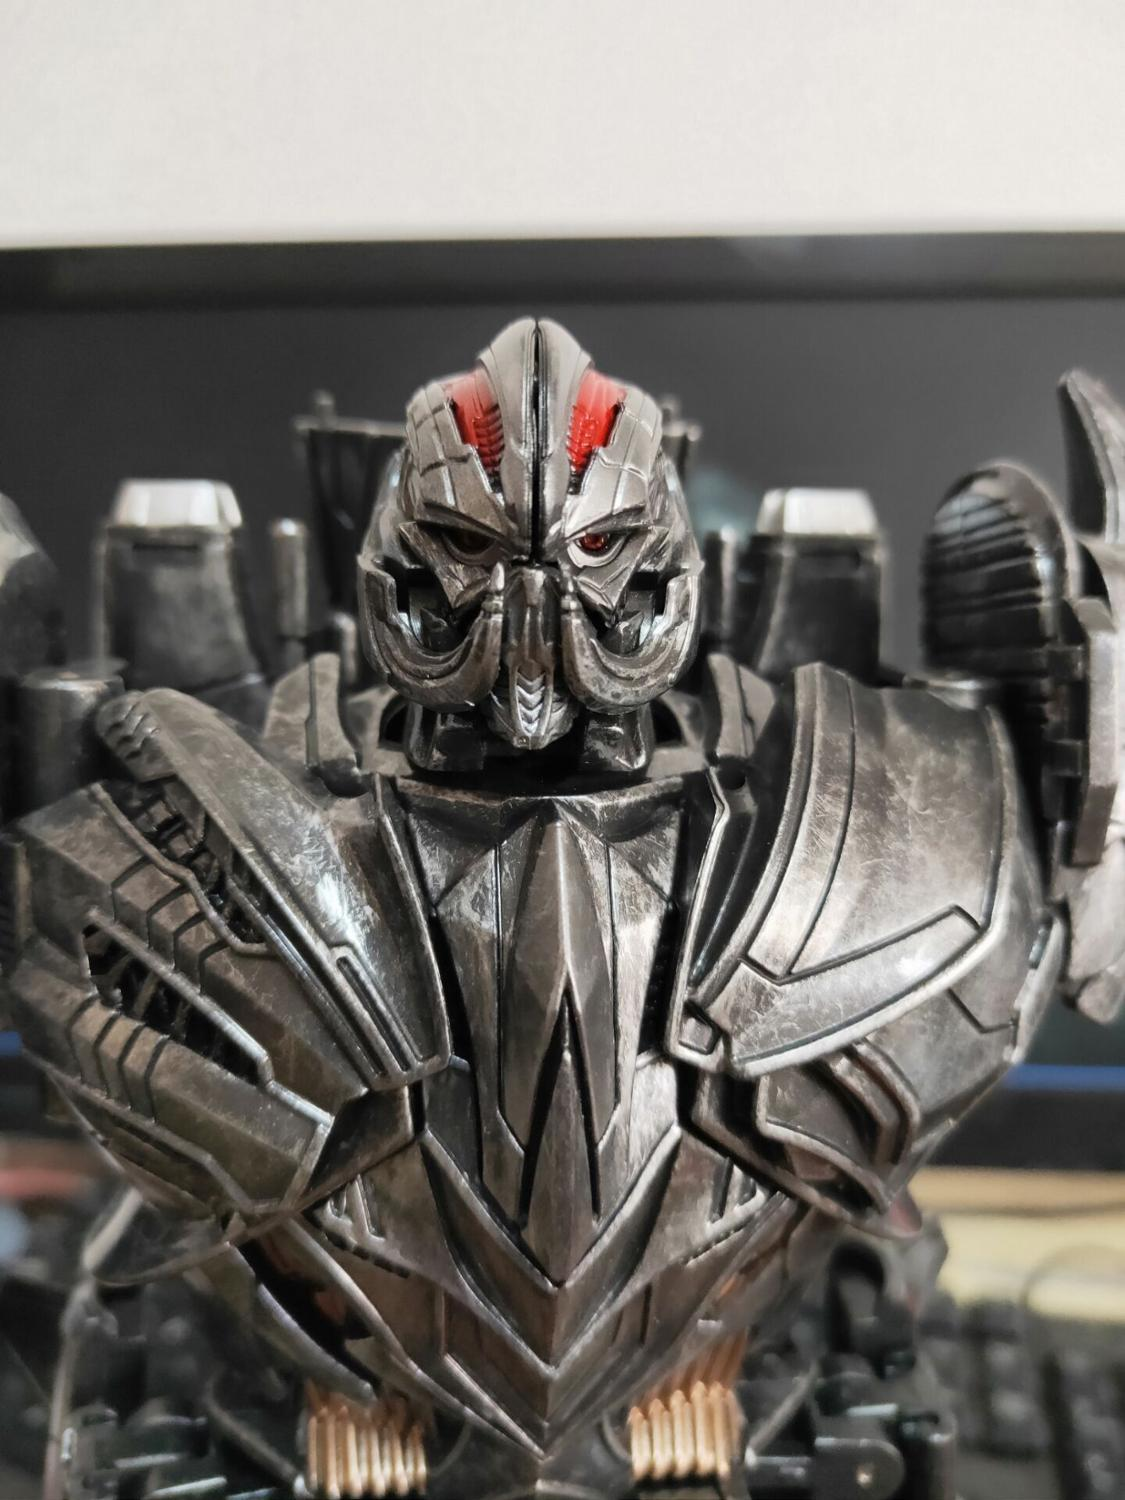 Transformers 32cm weijiang NE-01 mp36 mpp36 Mightron action figure toy hot sale